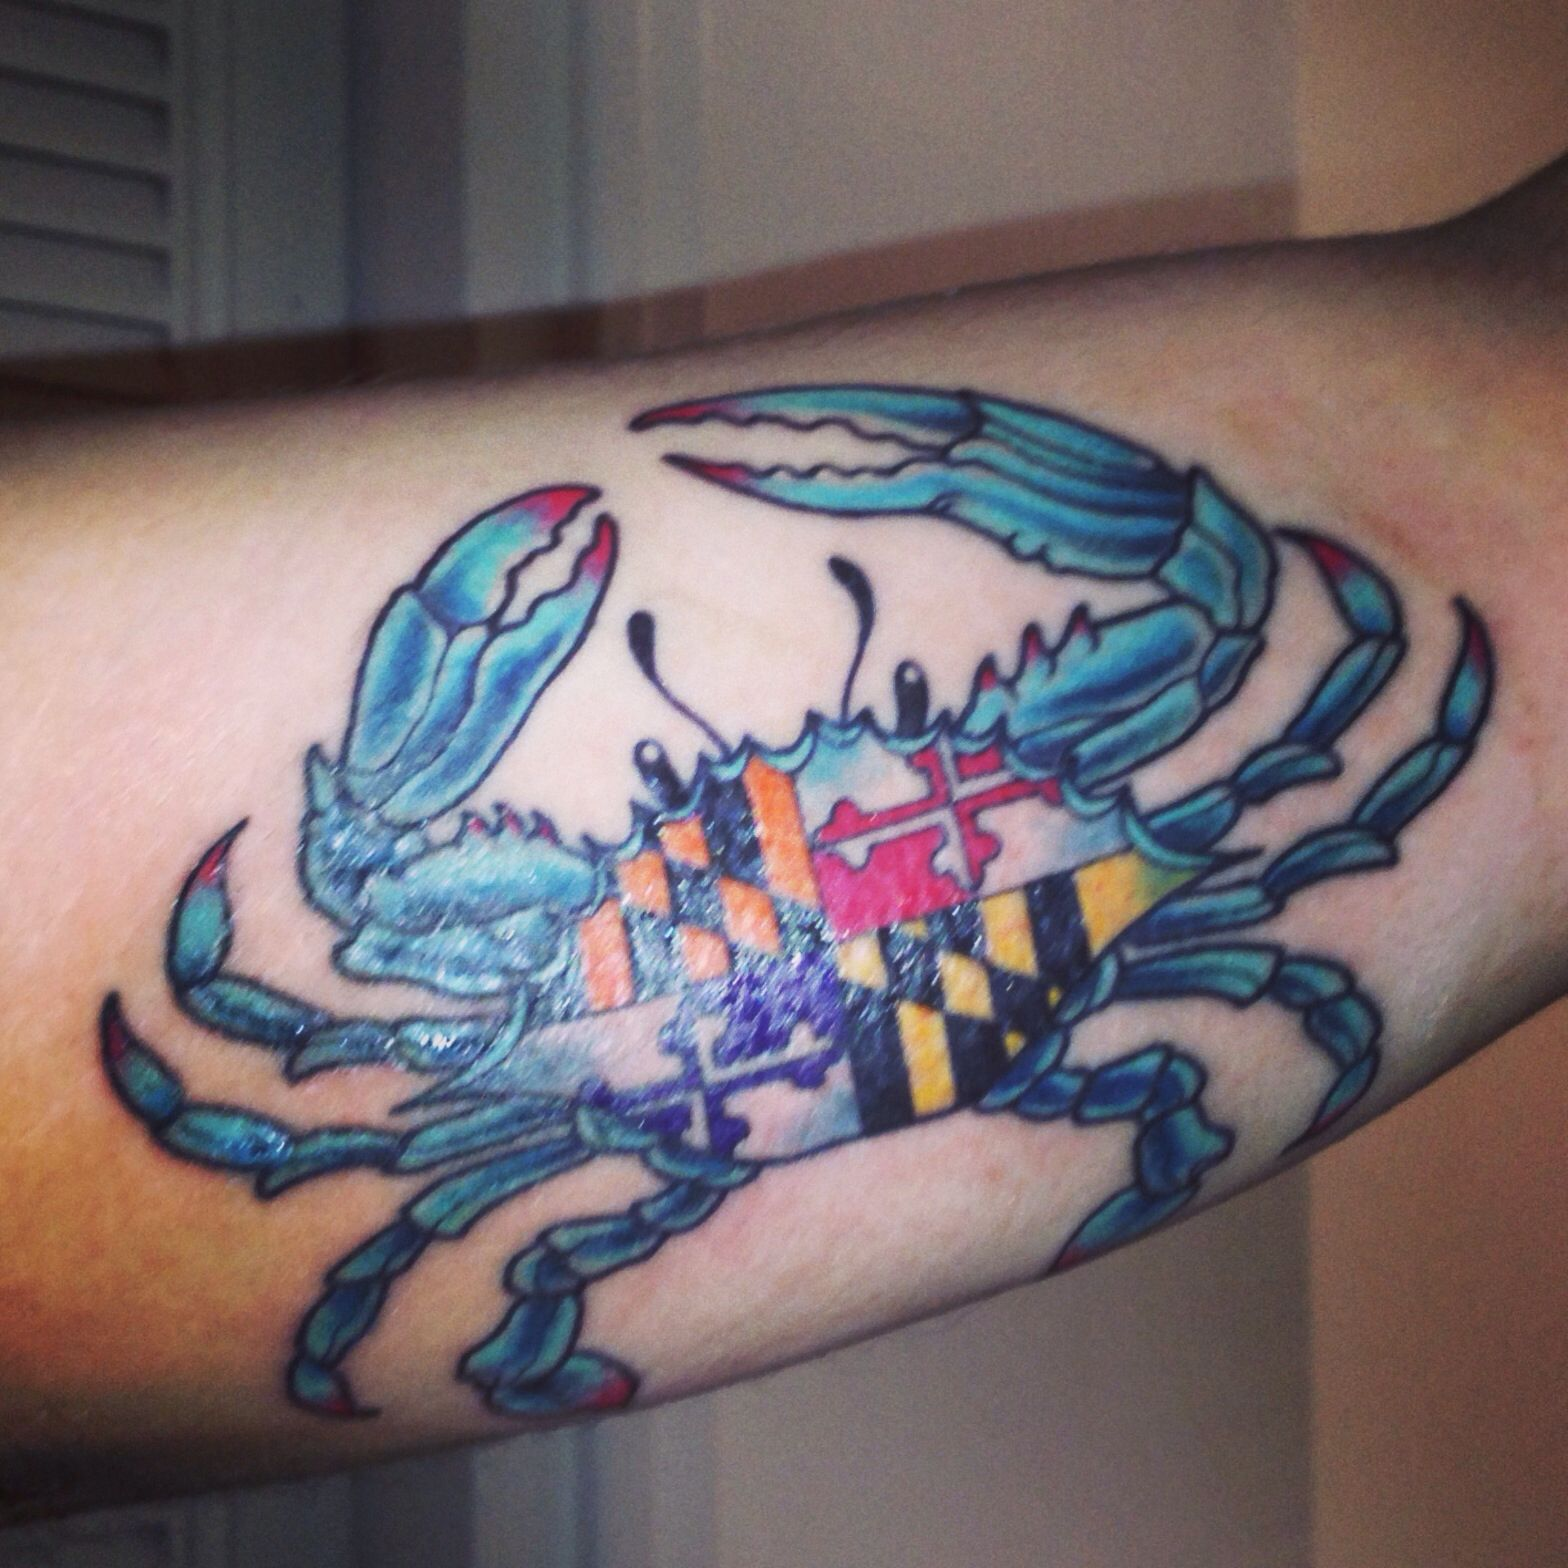 My maryland pride crab tattoo with ravens and orioles